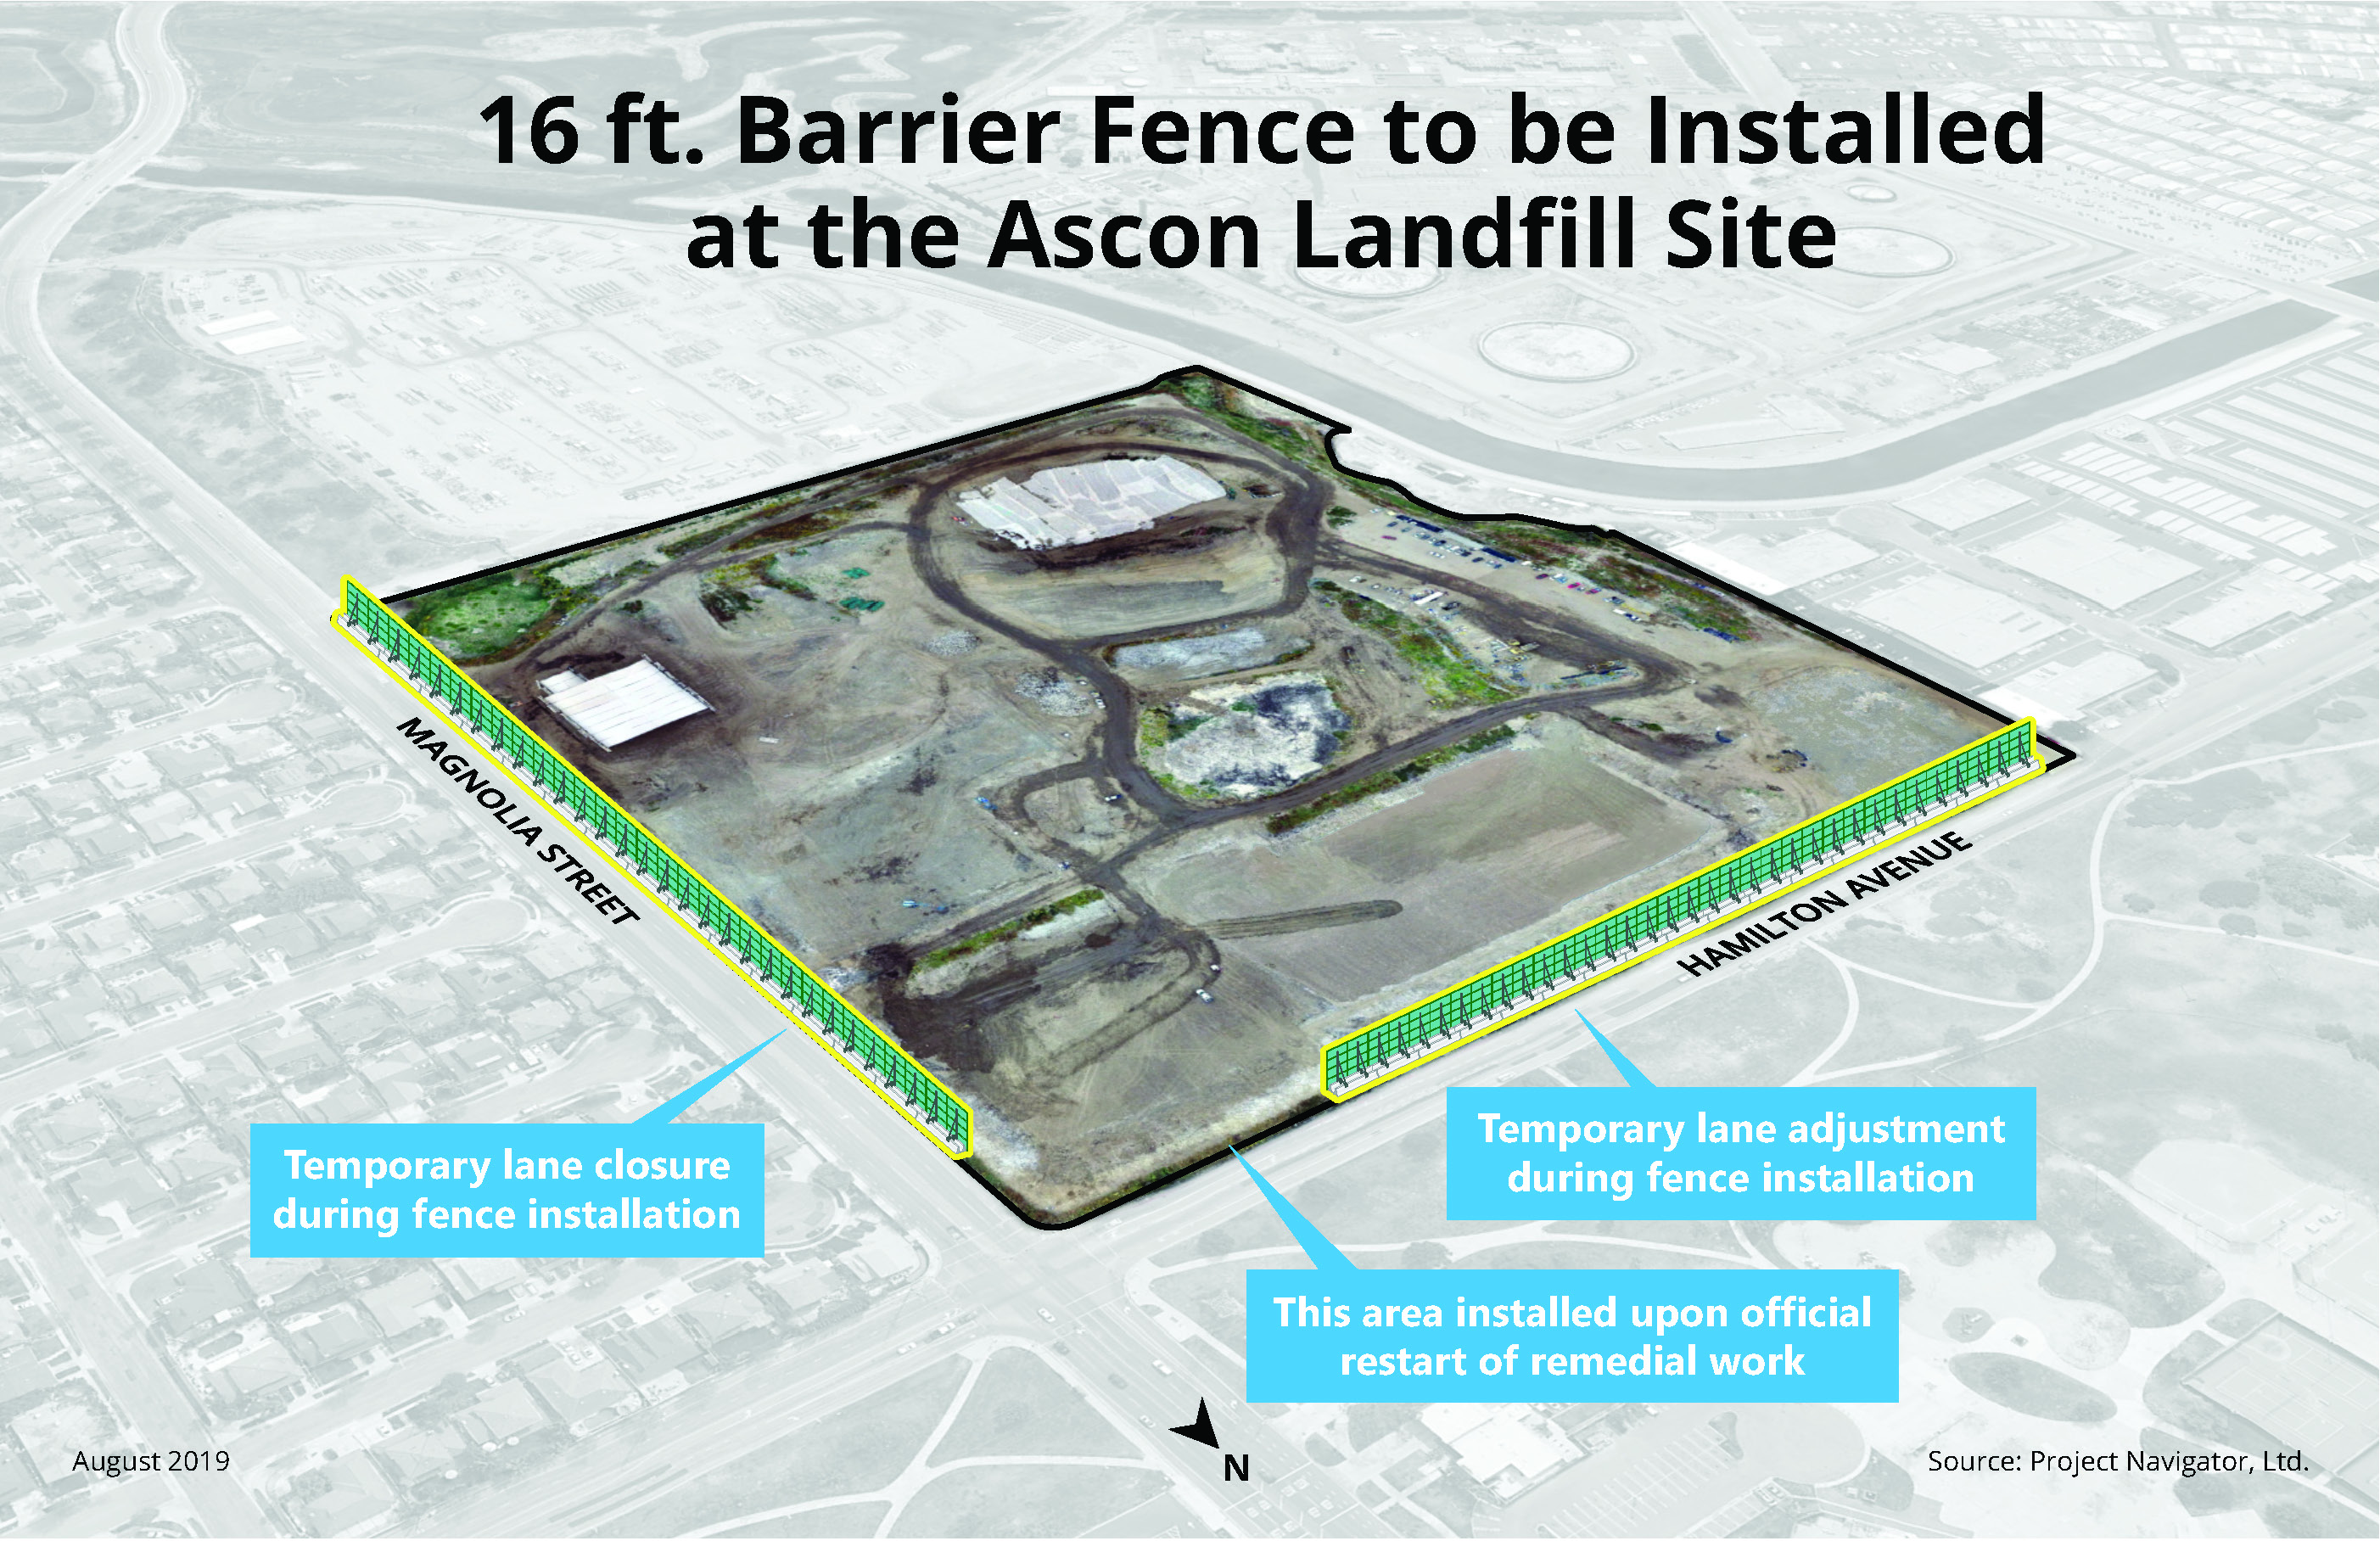 Final Remedy Barrier Fence Graphic, Aug 30, 2019